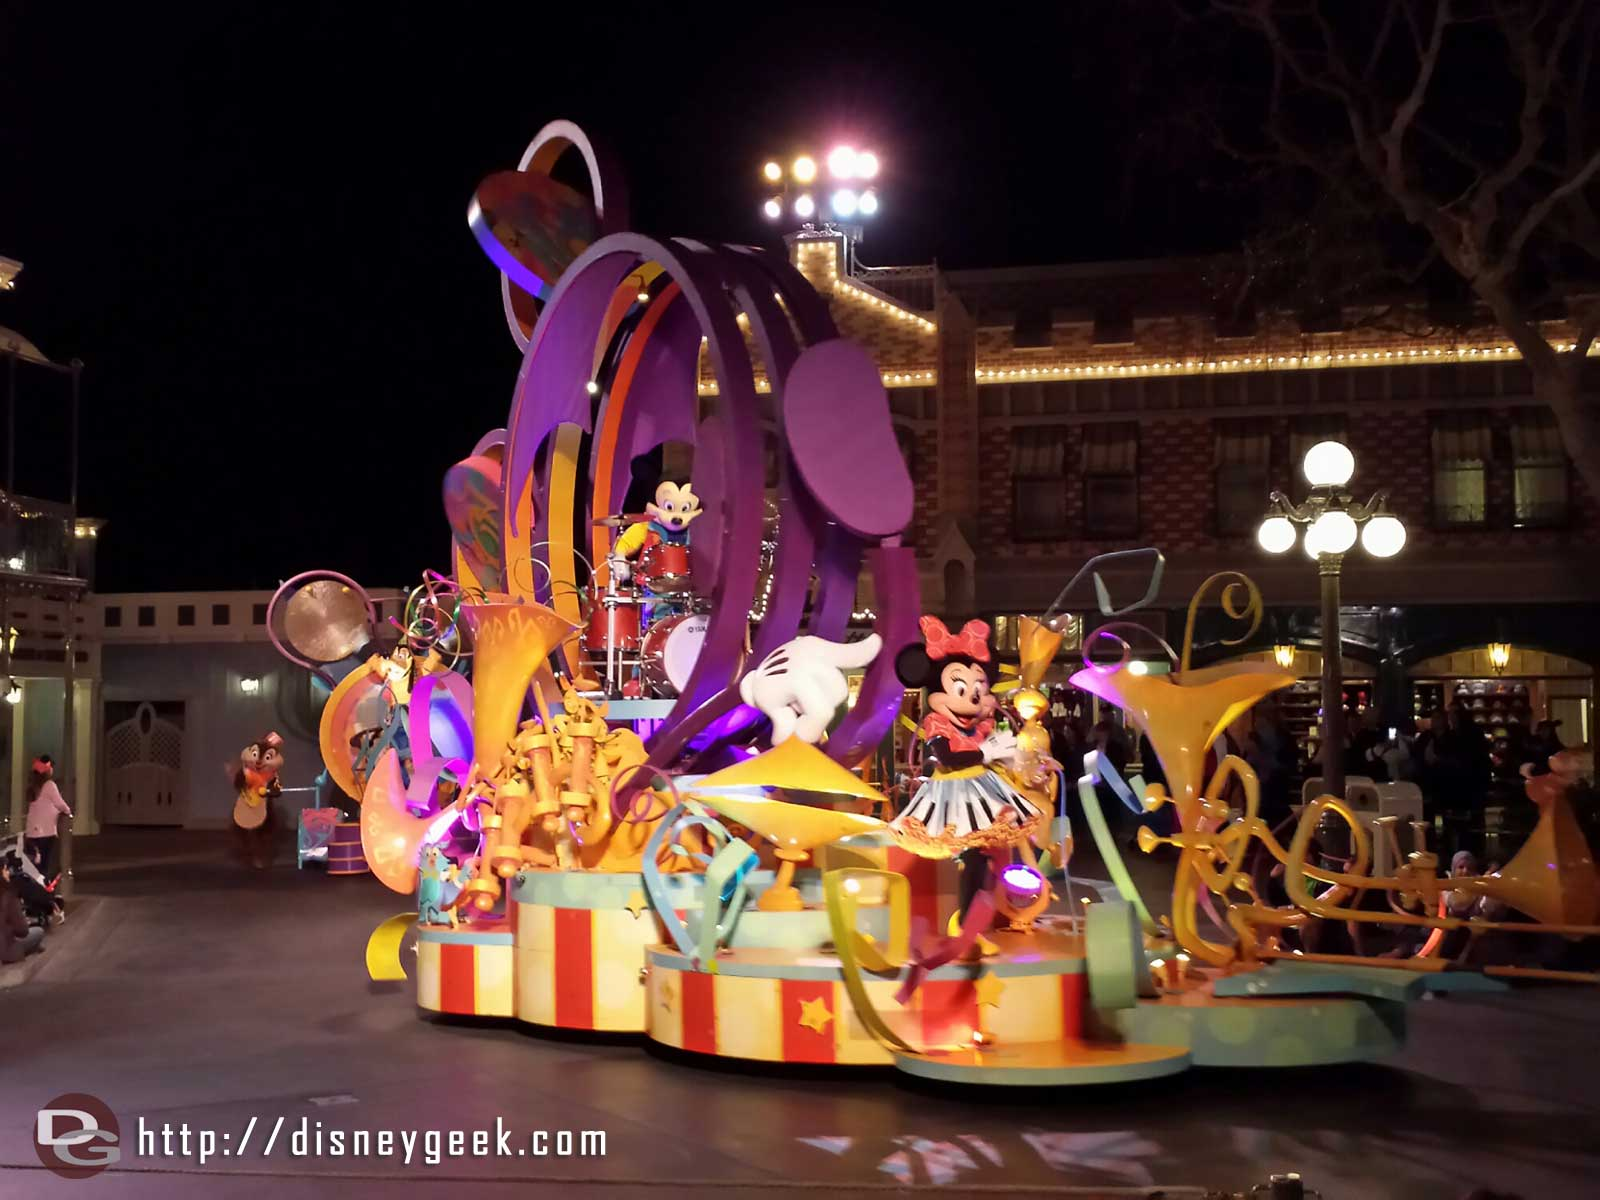 Mickey's Soundsational opening float with Minnie & Mickey #Disneyland